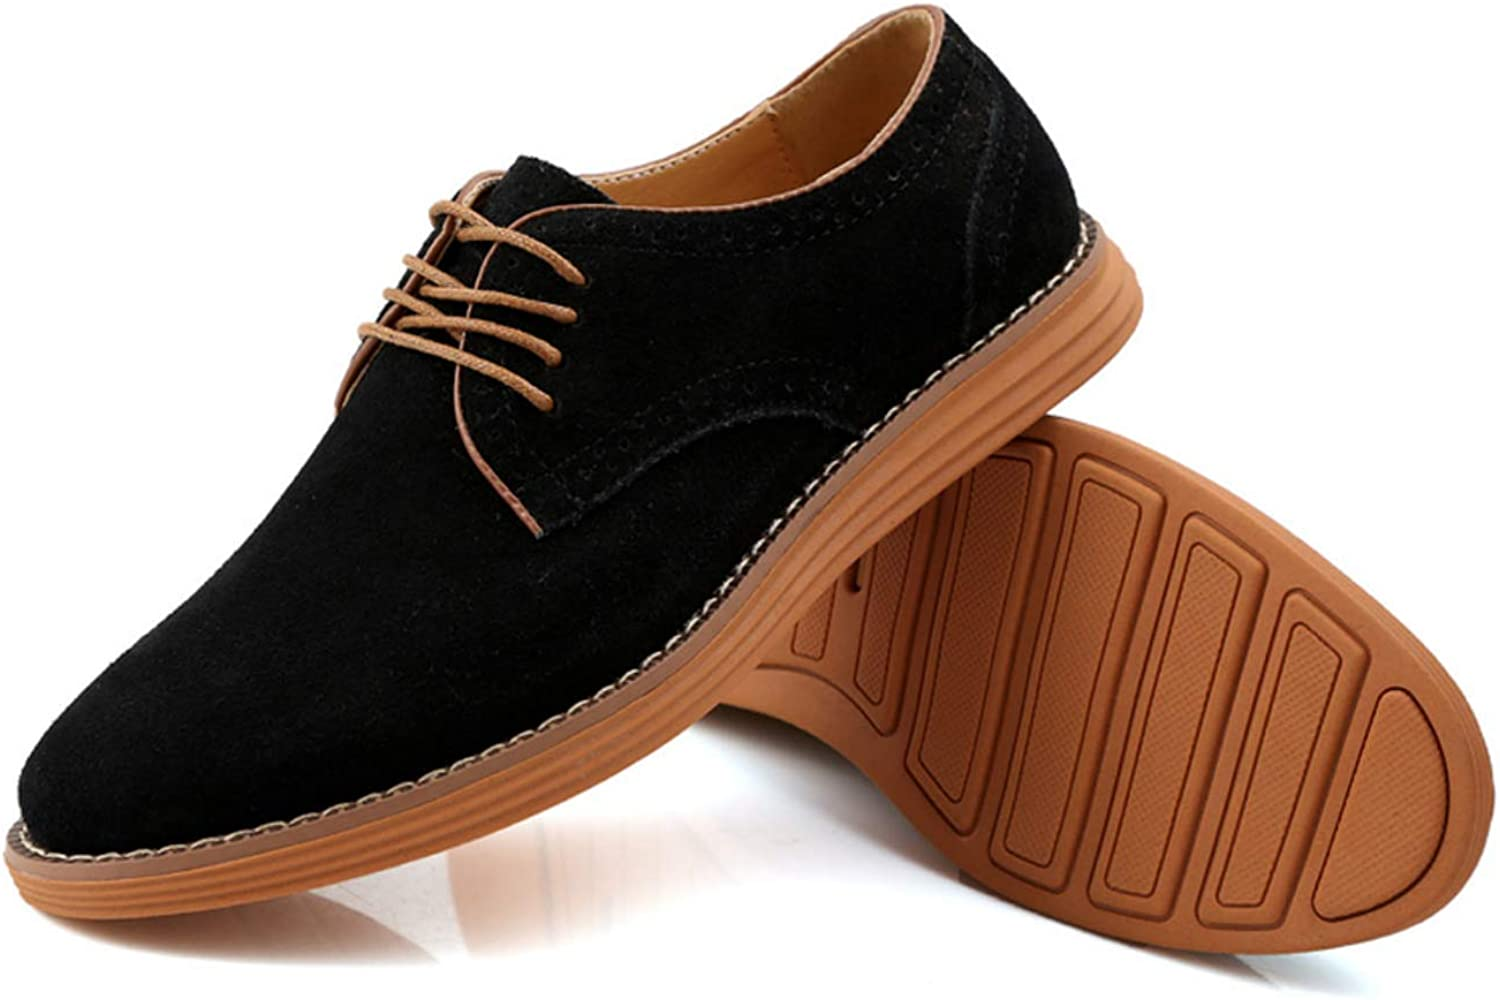 Moodeng Men`s Classic Suede Oxford shoes Summer Causal Walking Dress shoes Non-Slip Lace Up Fashion Sneaker Black